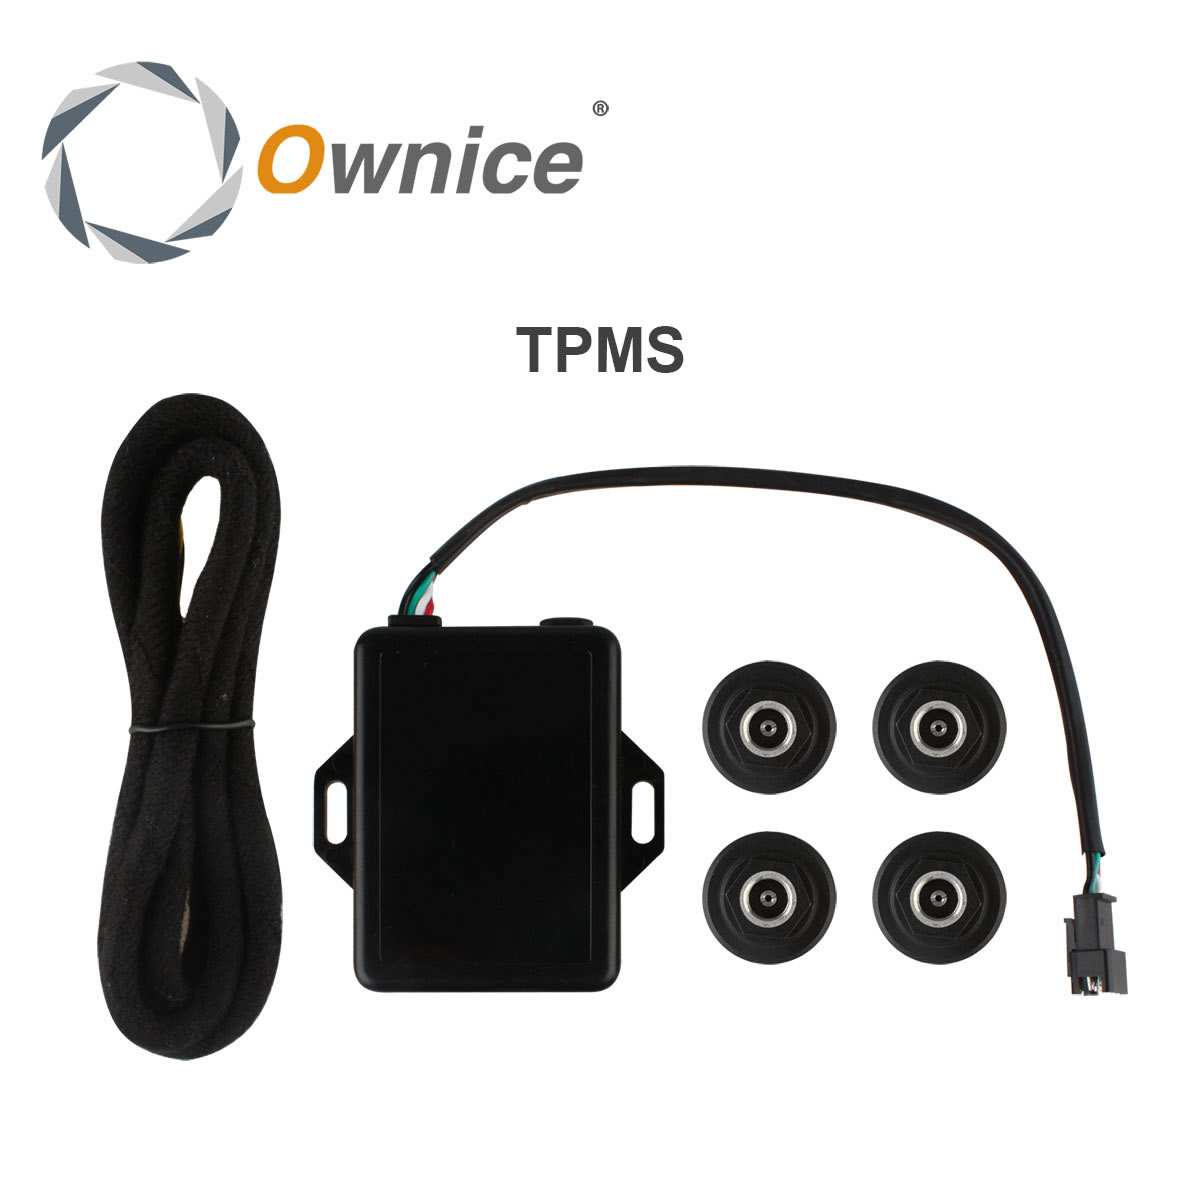 Special Car Tire Pressure System Only for ownice display the tempreature and pressure with high degree accuracy the host 8 copy floor display with special riser